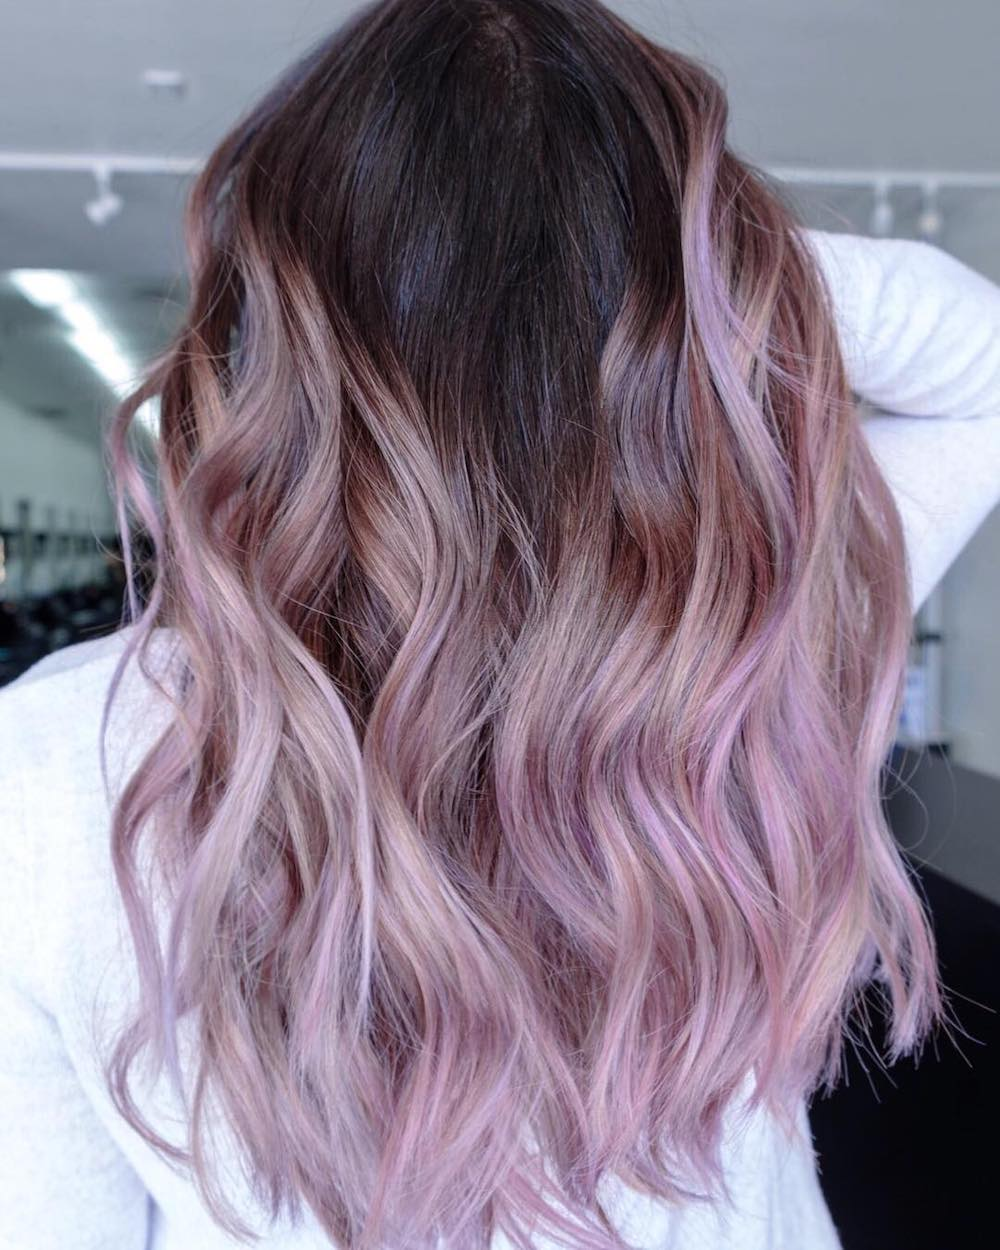 17 Stunning Shadow Roots Hair Colors Thefashionspot